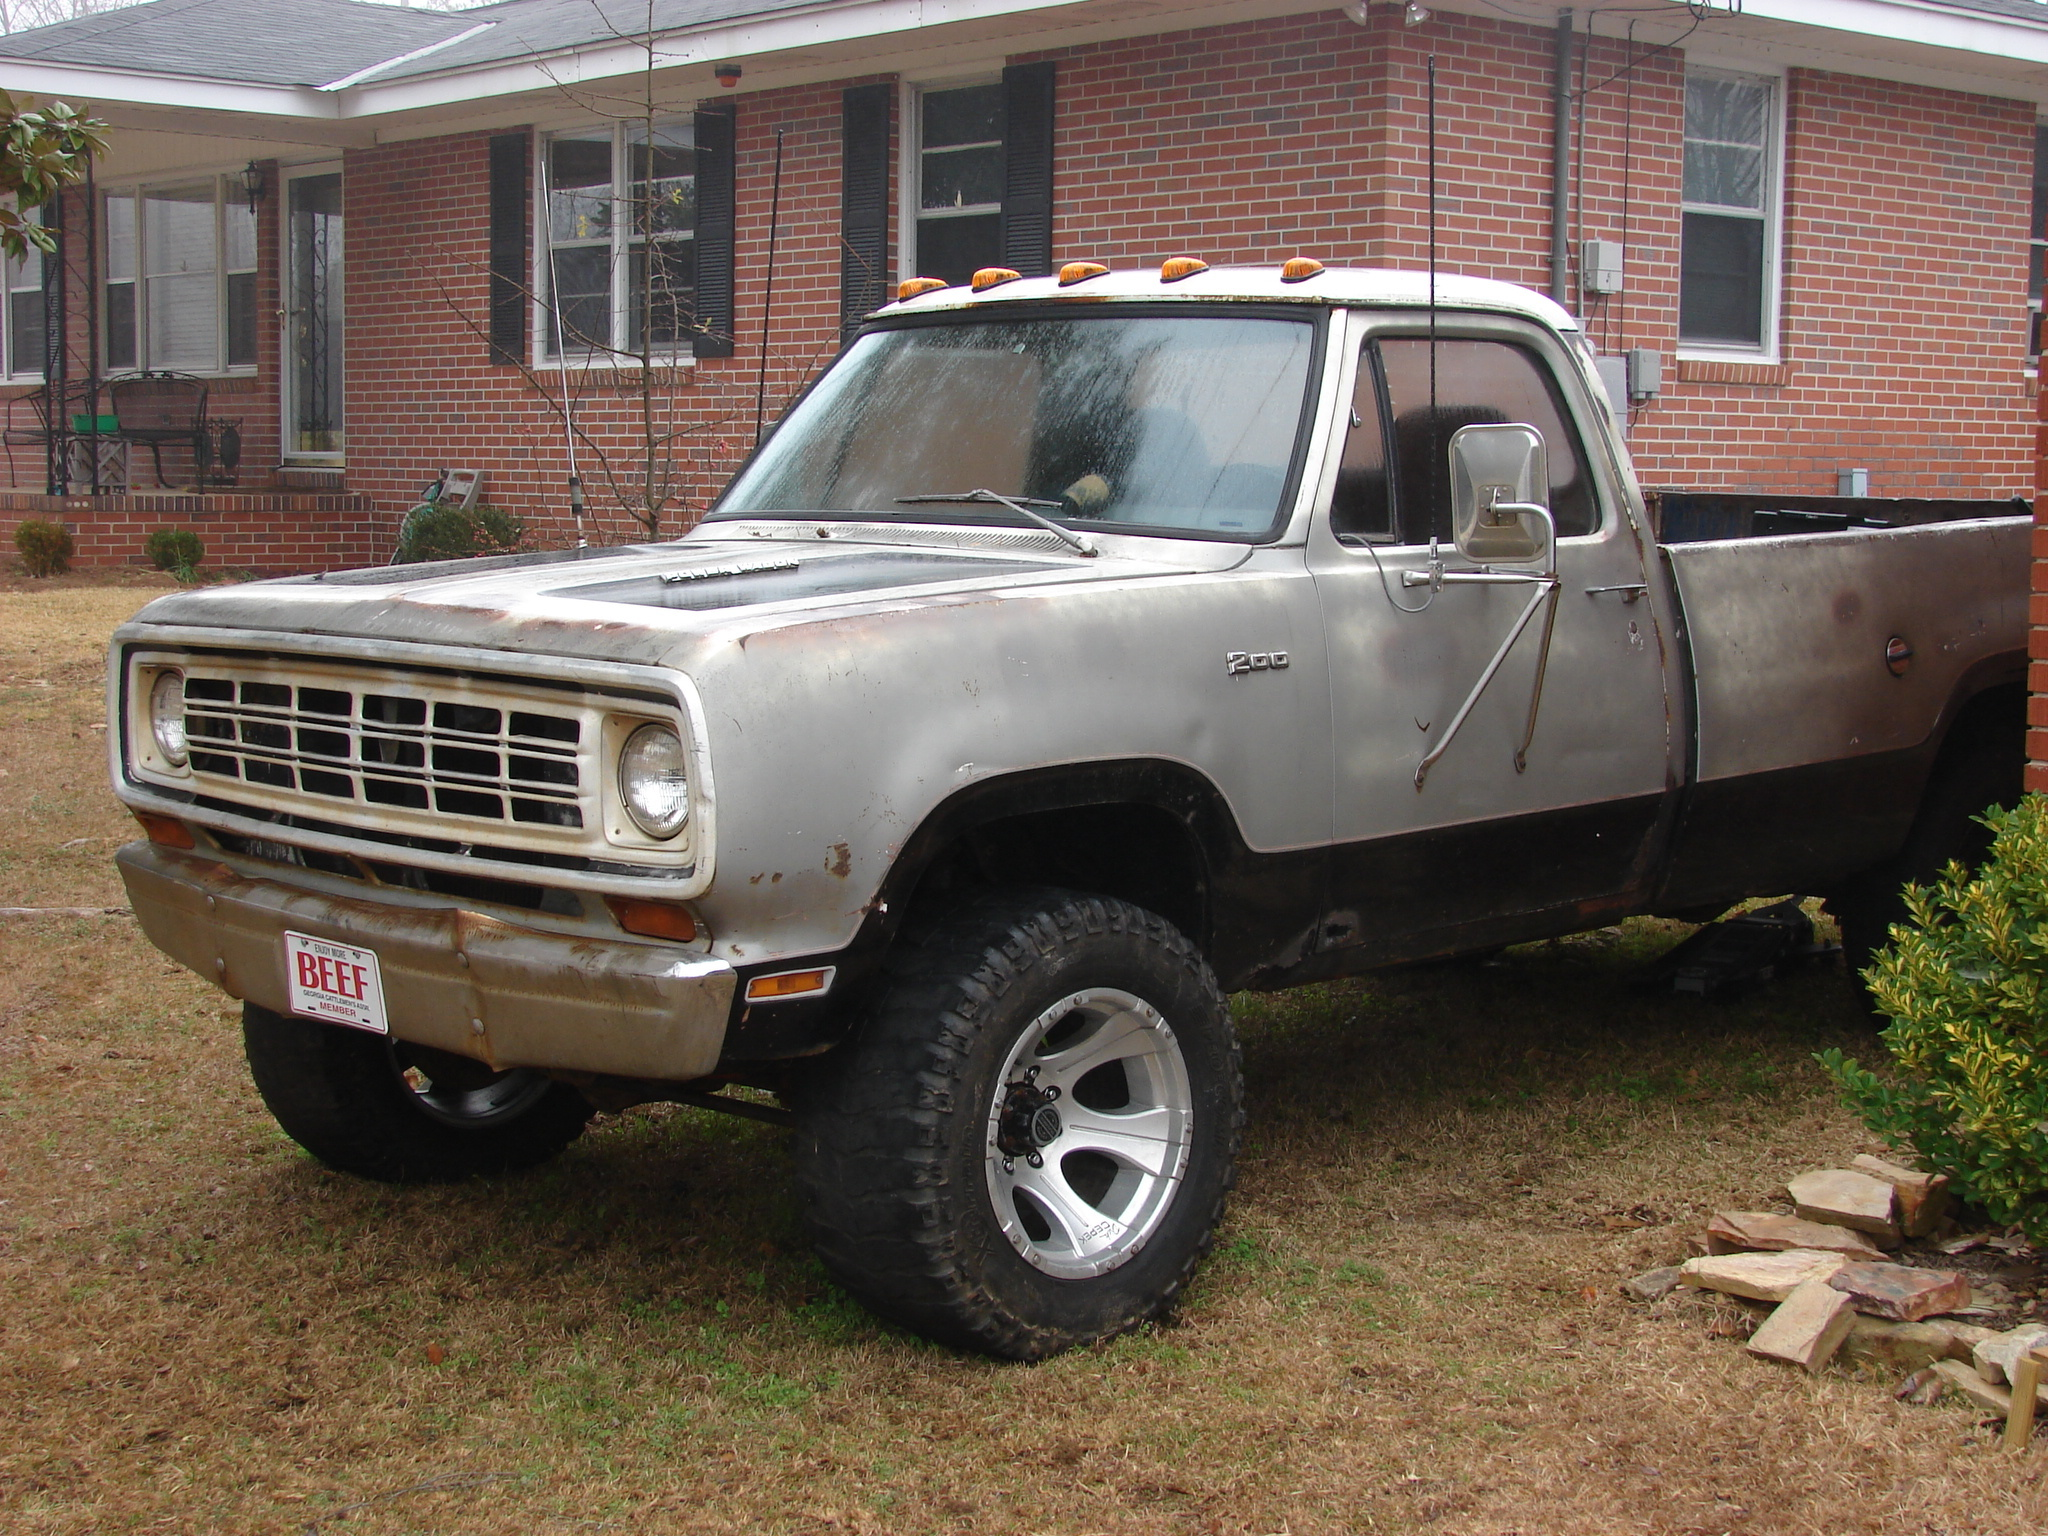 Demon_Offroad's 1974 Dodge Power Wagon